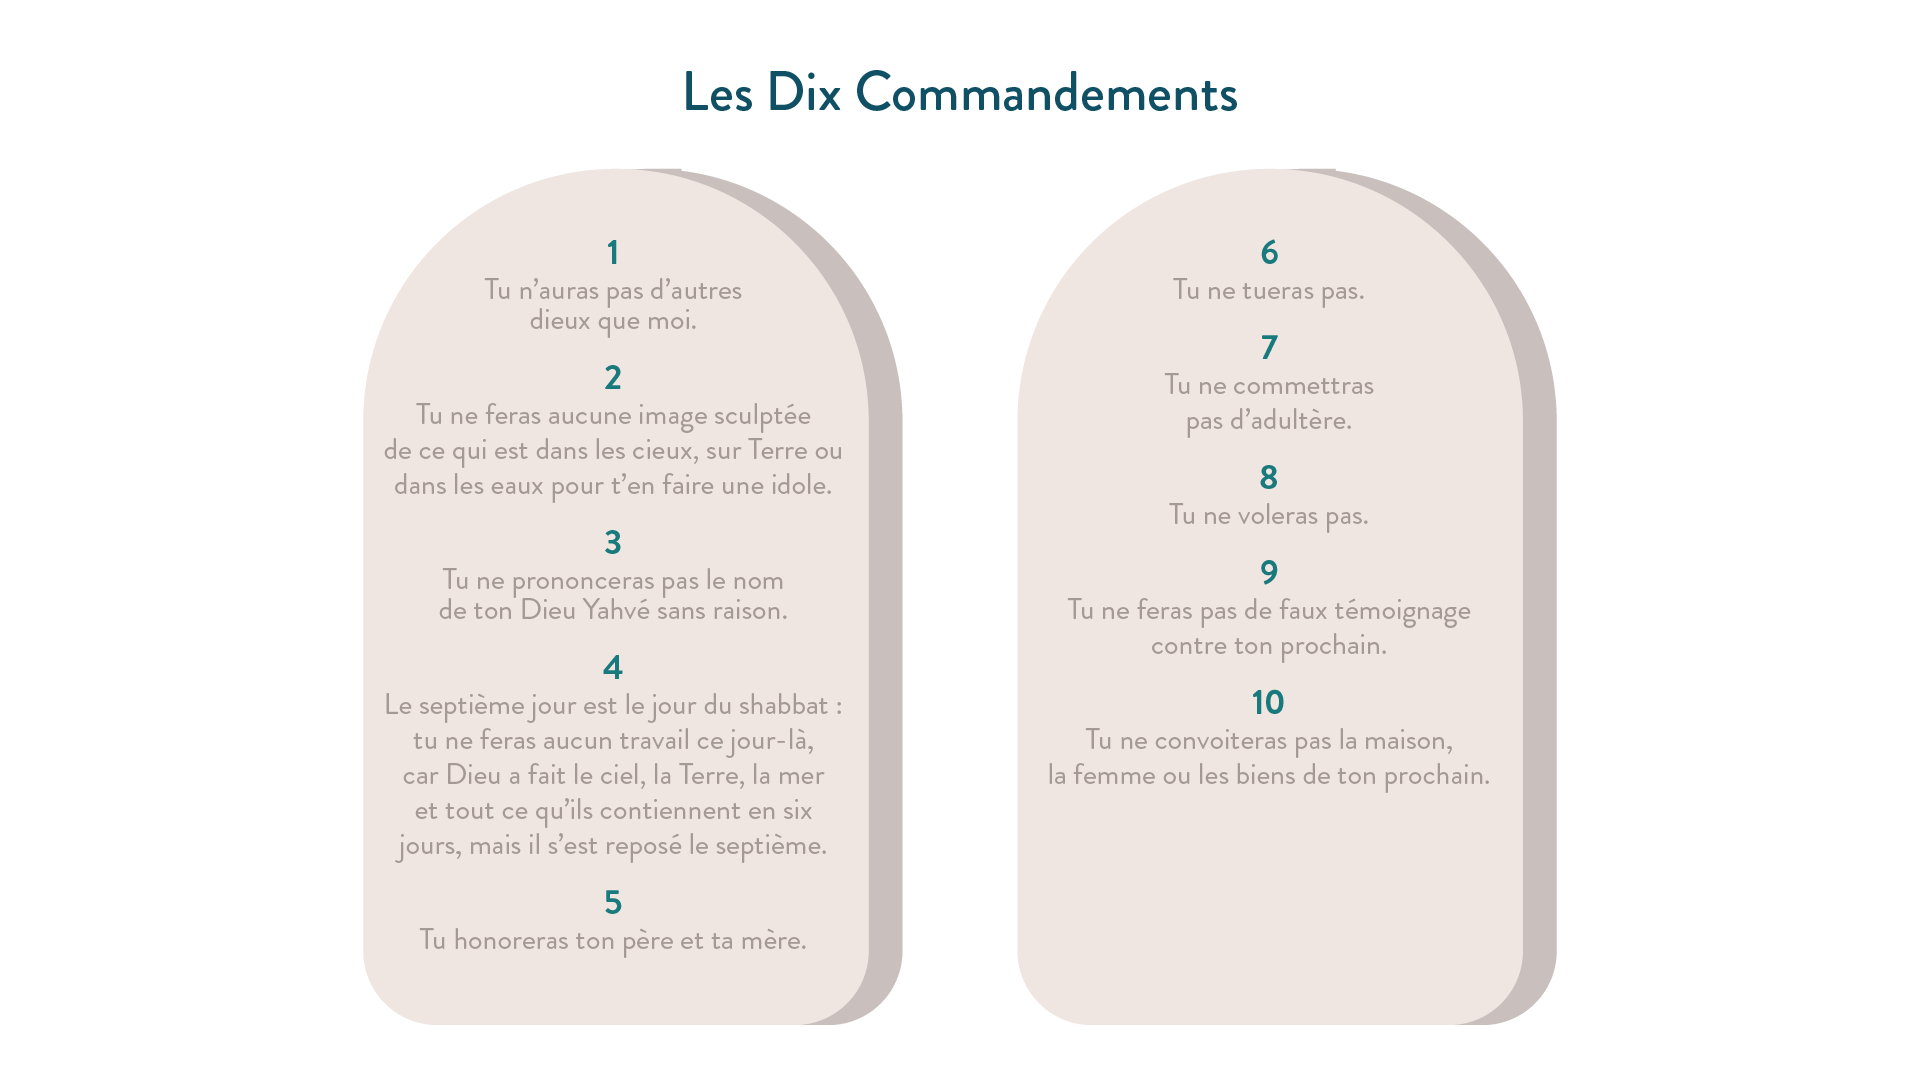 les 10 commandements de la bible pdf